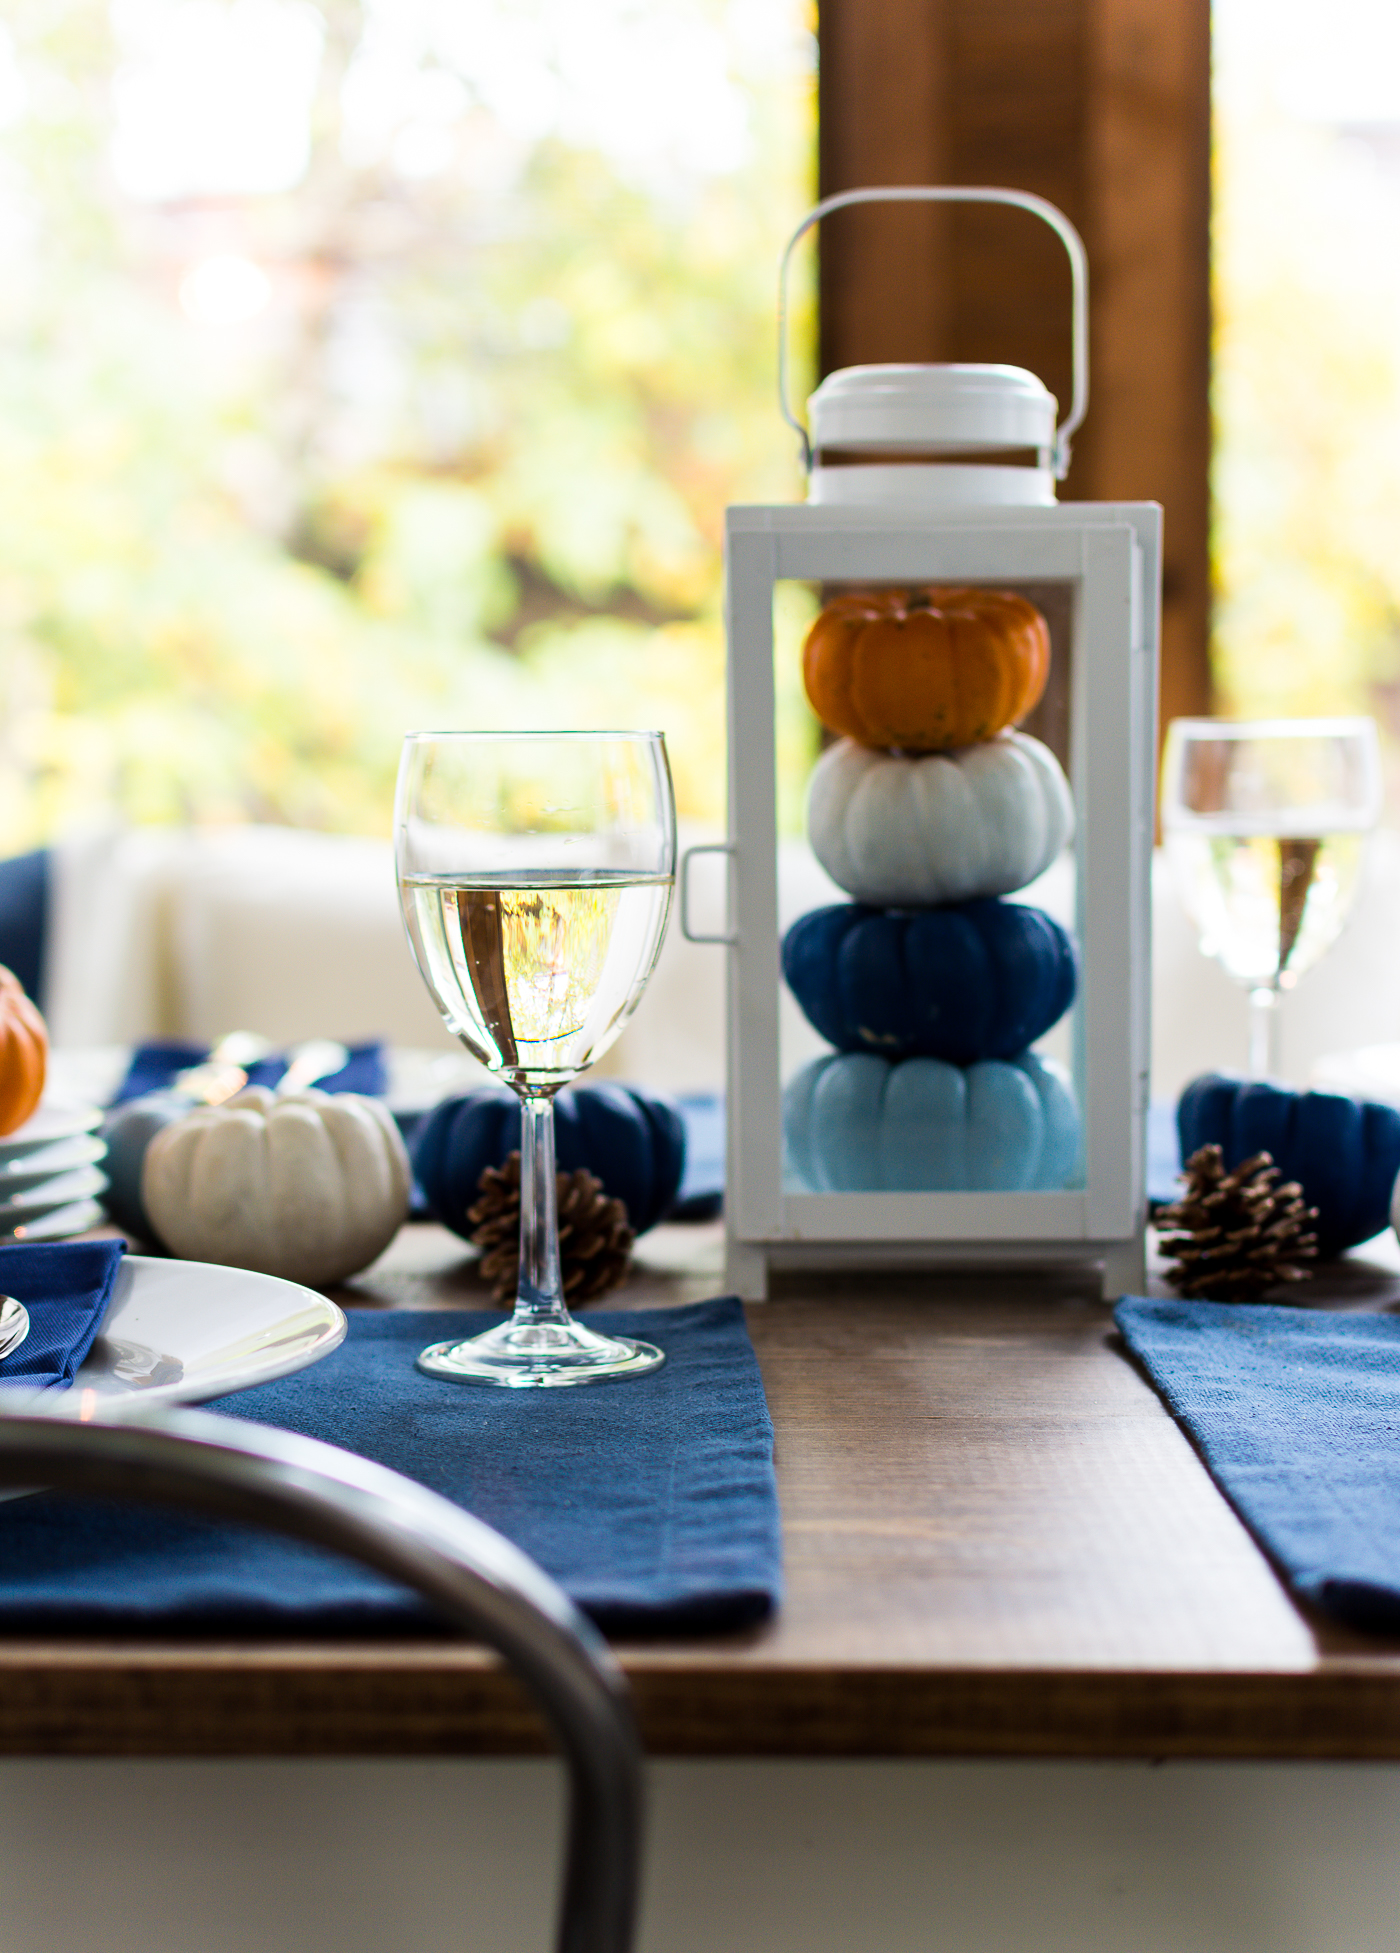 thanksgiving-table-setting-idea-navy-blue-white-orange-with-gallo-wine-pinot-grigio-itallstartedwithpait-com-58